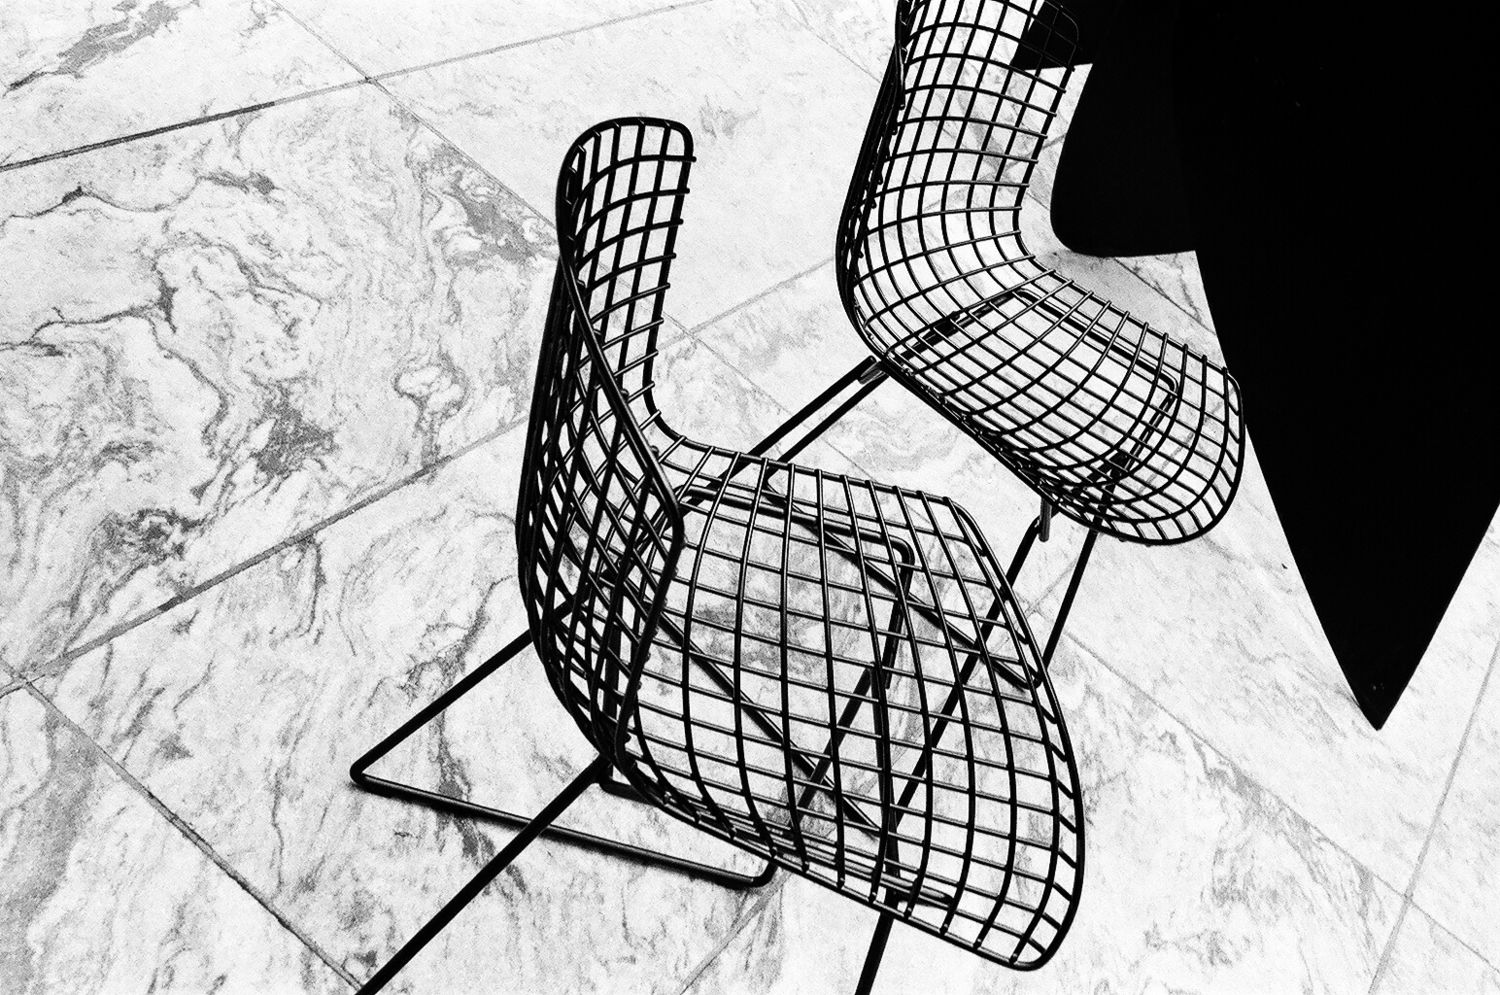 Chairs, New York 2009   Edition 1 of 2